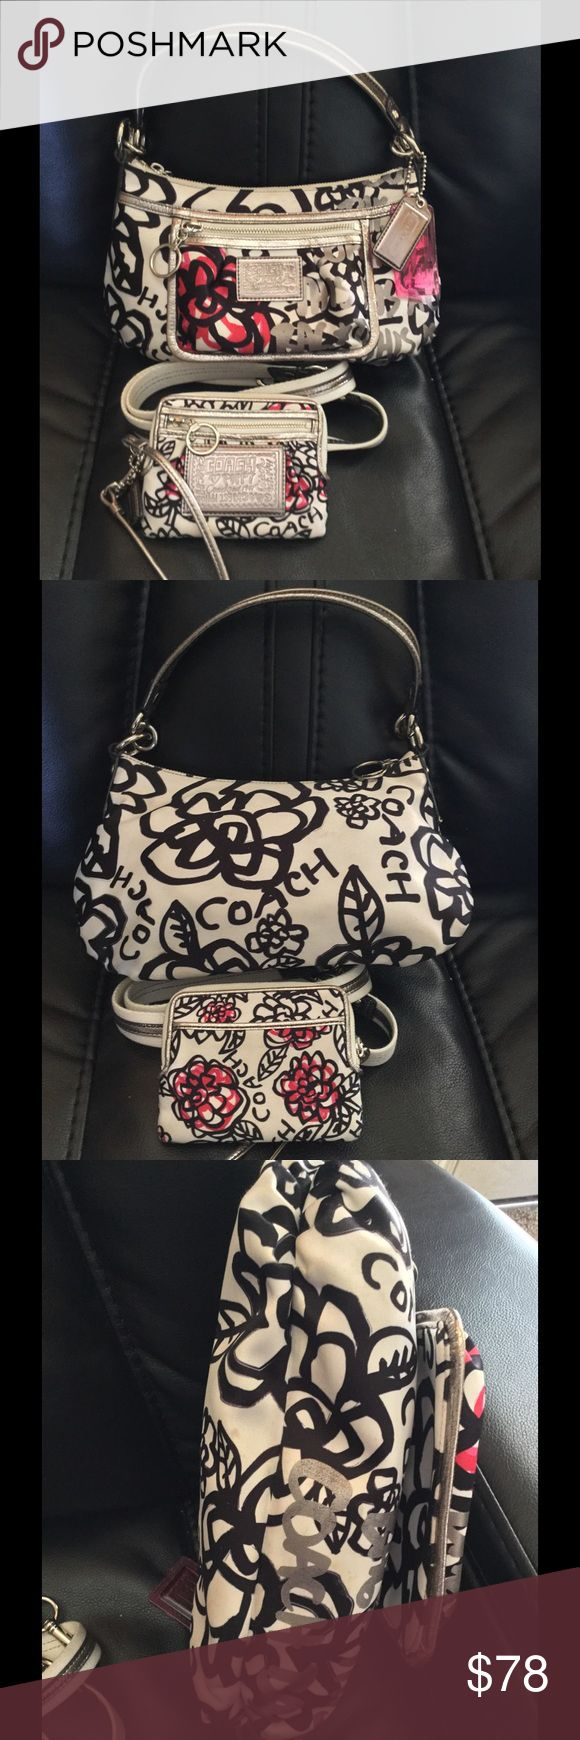 Authentic coach poppy crossbody and wristlet GUC. Has some minor soiling inside and out. No tears or odors. No metallic wear. Handles good.  10 inches wide X 7 inches tall  Excellent condition  Includes hangtags pictured Coach Bags Crossbody Bags